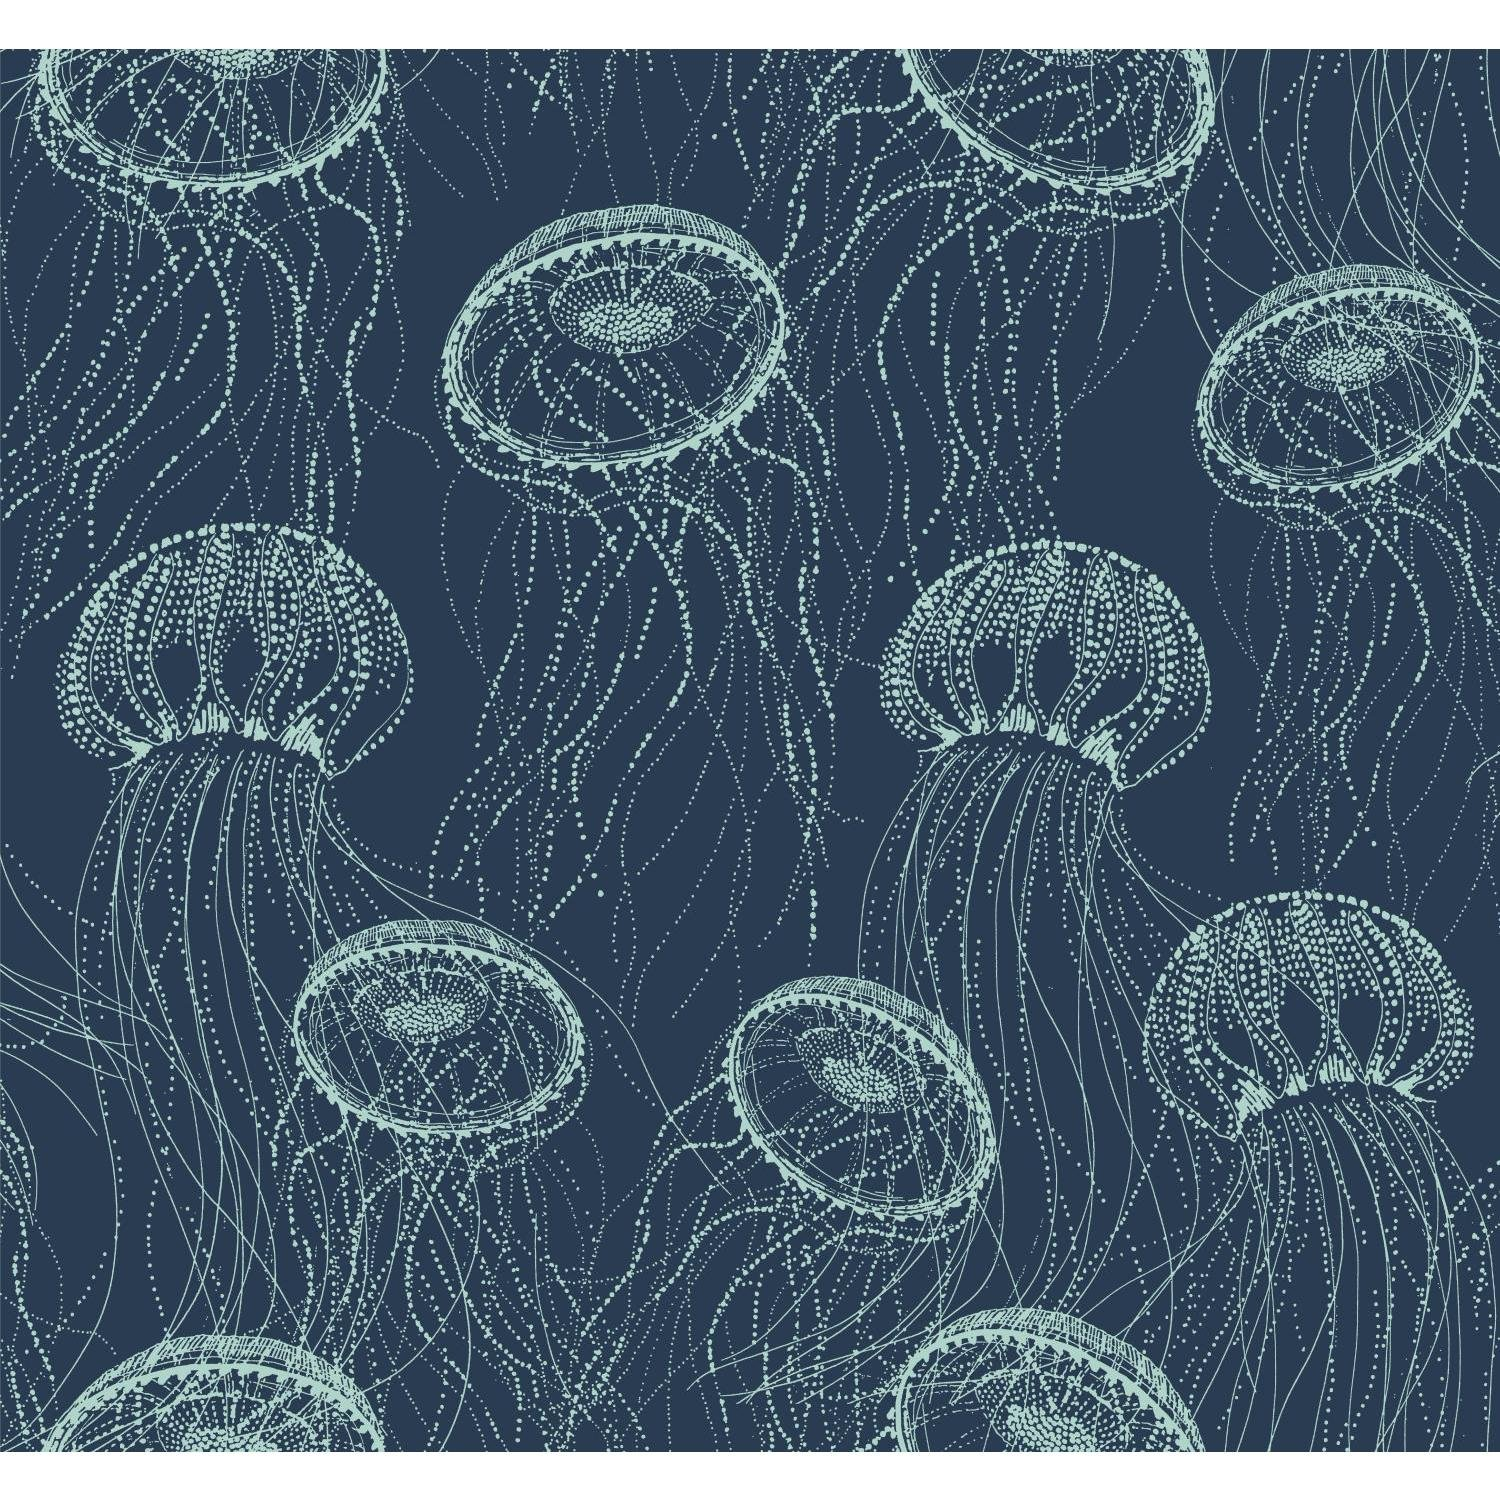 jellyfish mermaid wallpaper